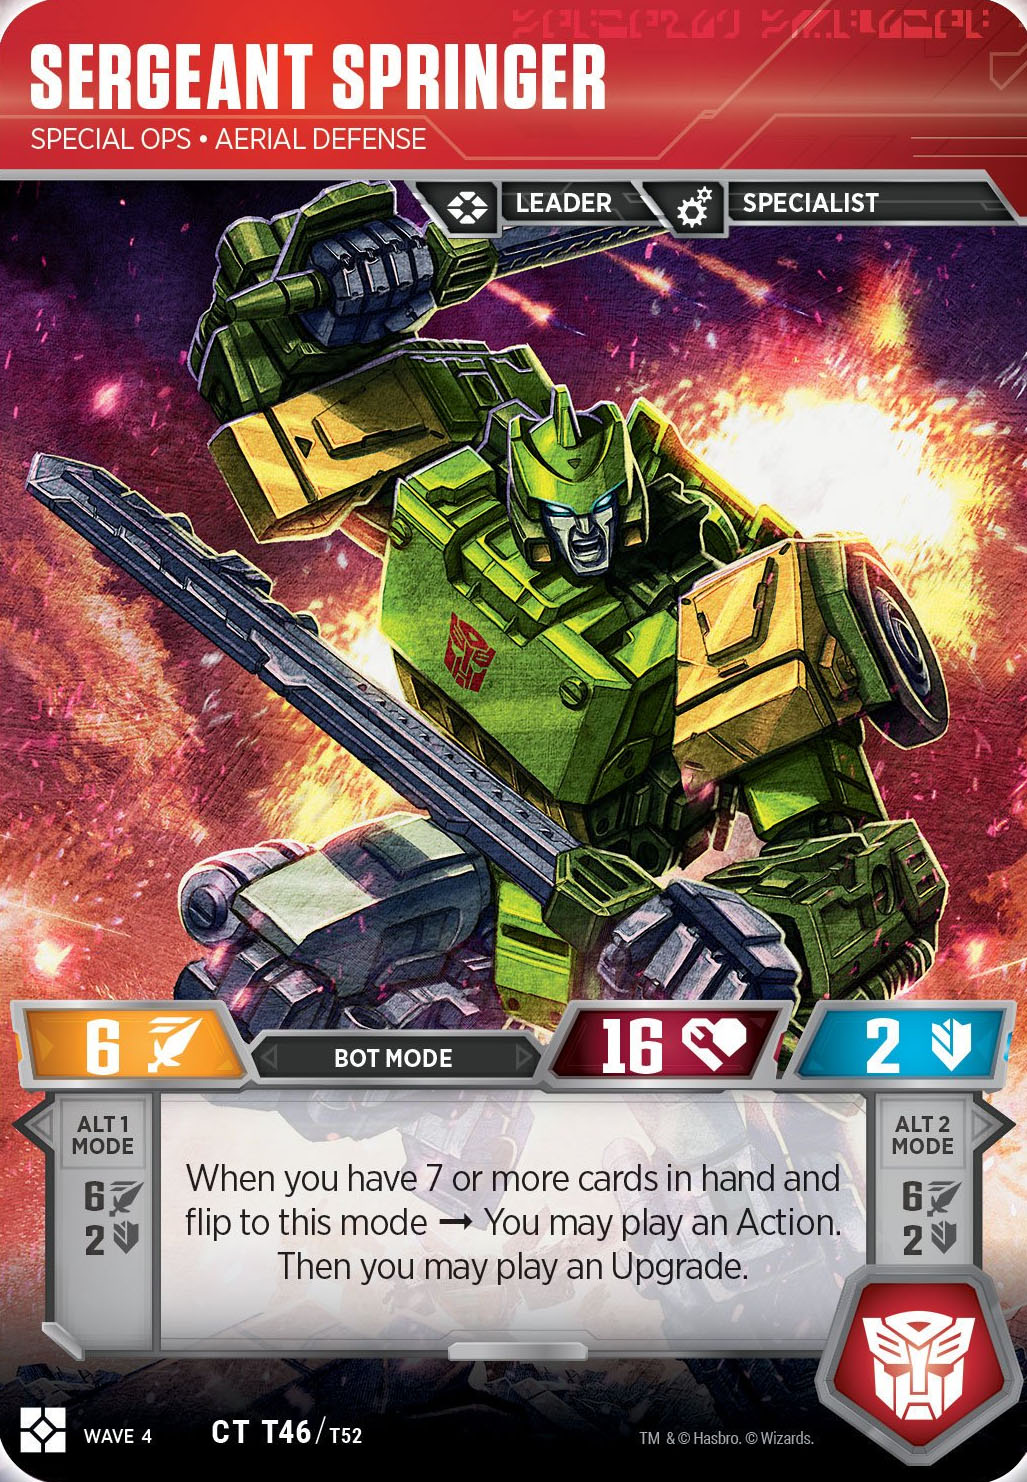 https://images.fortressmaximus.io/cards/ws2/character/sergeant-springer-special-ops-aerial-defense-WS2-bot.jpg